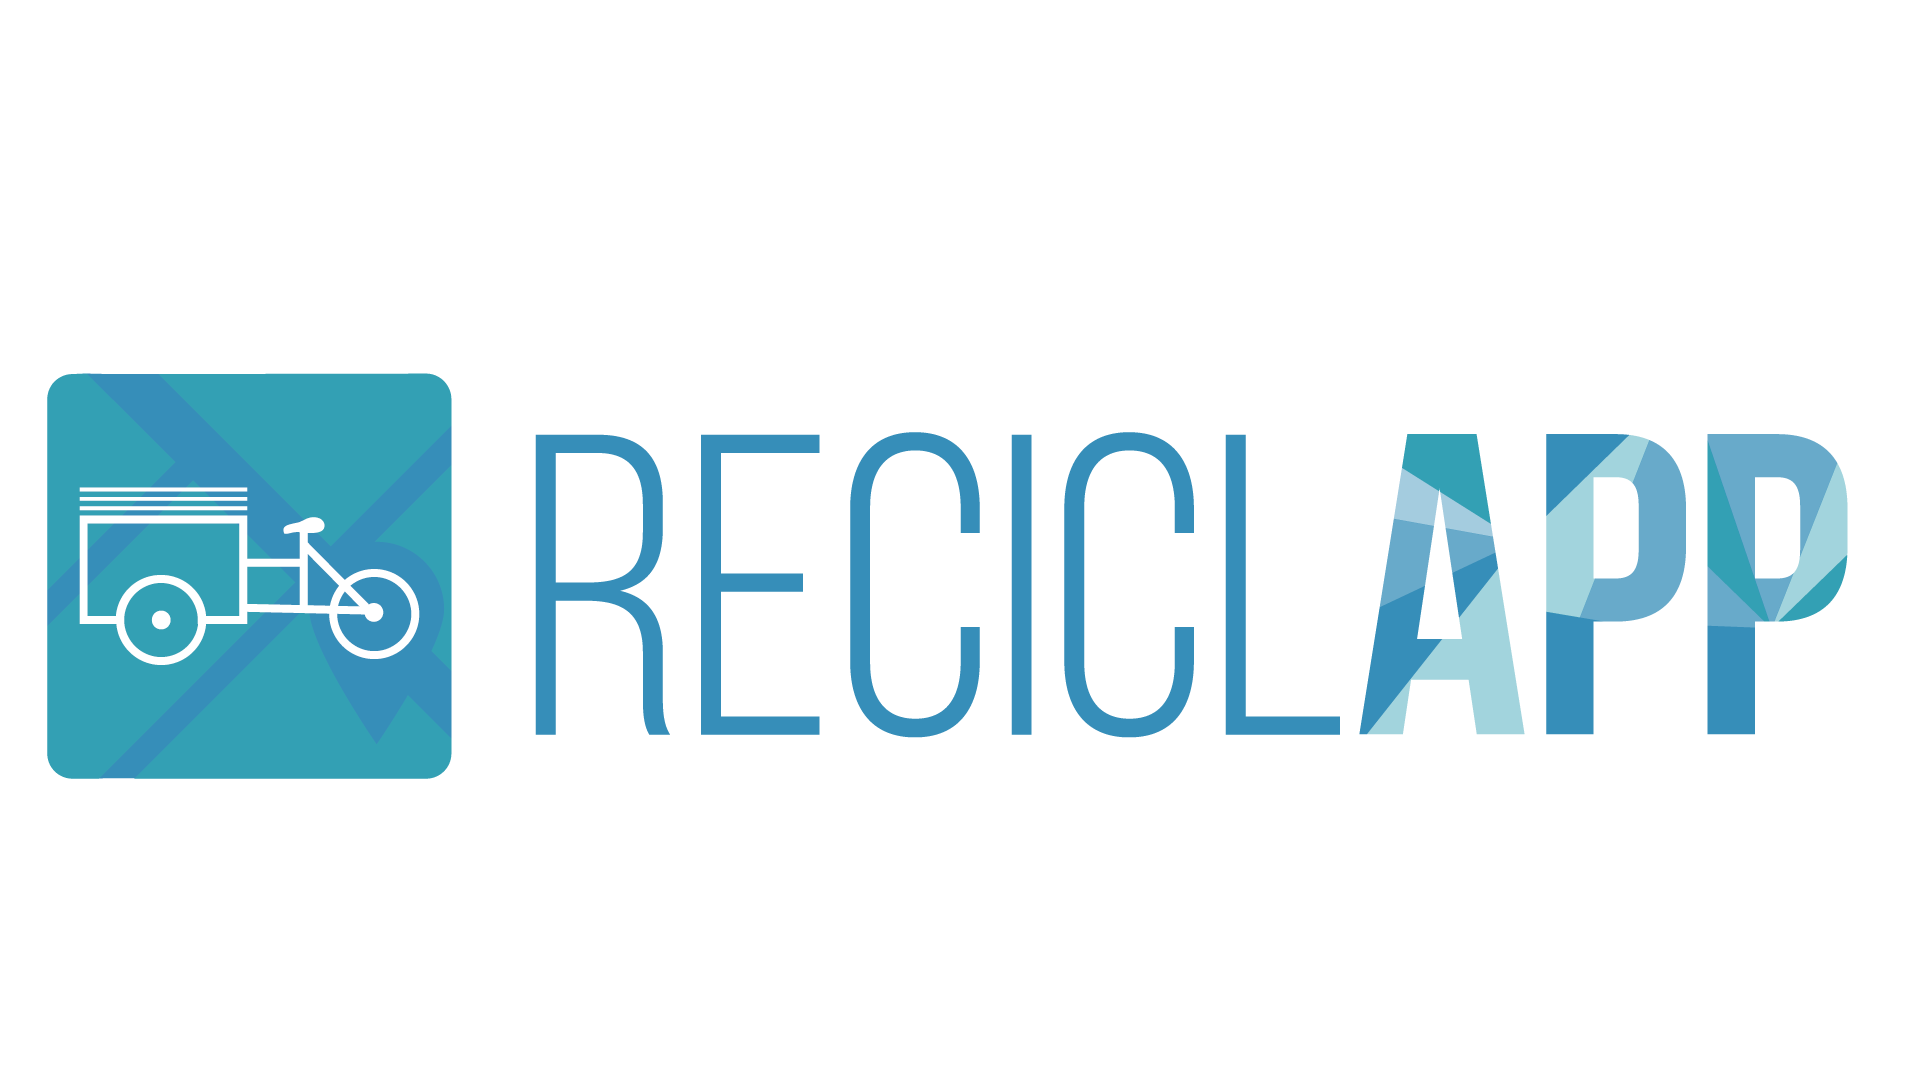 ReciclApp.cl